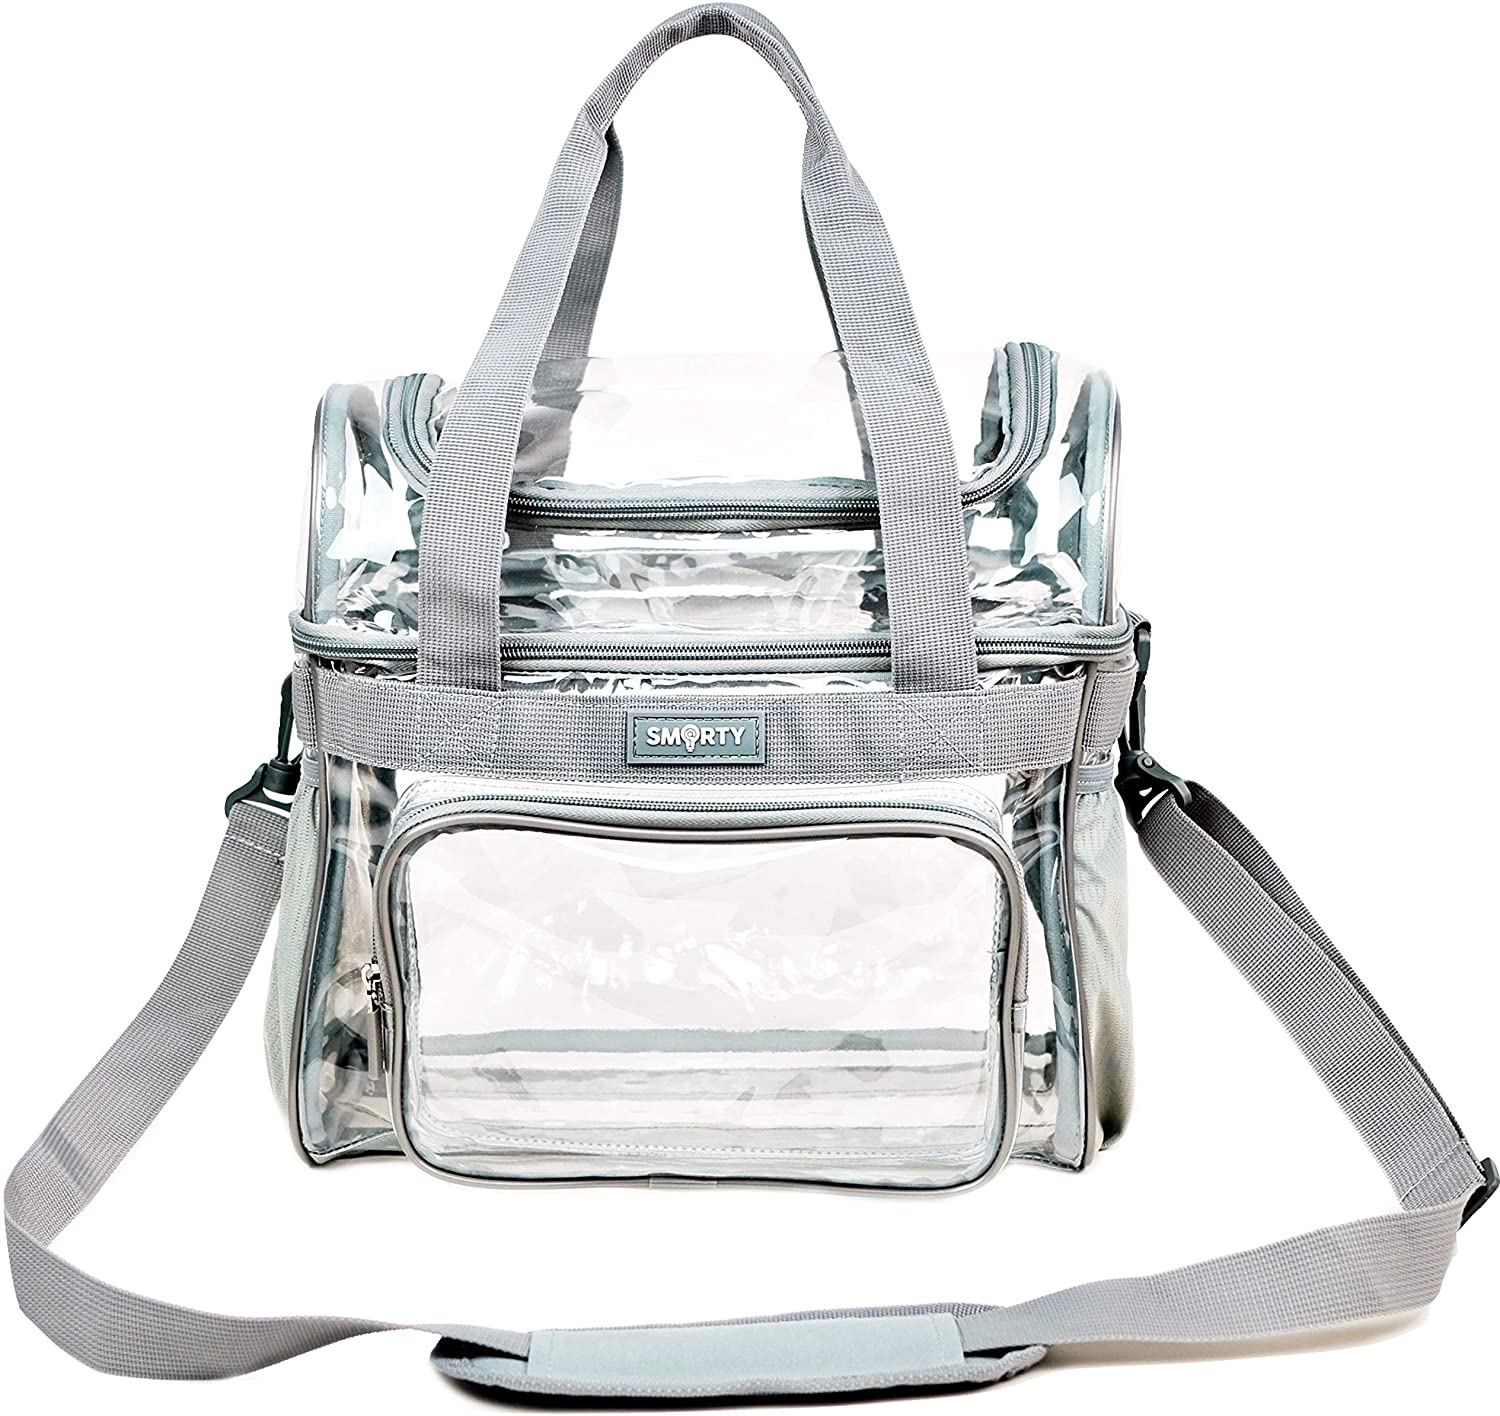 SMARTY Heavy Duty Clear Lunch Tote Stadium Bag Correctional Officers Approved Crossbody Diaper Travel Makeup Cosmetic Bag for Work NFL Football NCAA Basketball PGA NASCAR Concerts (Gray, 12 x 6 x 12)